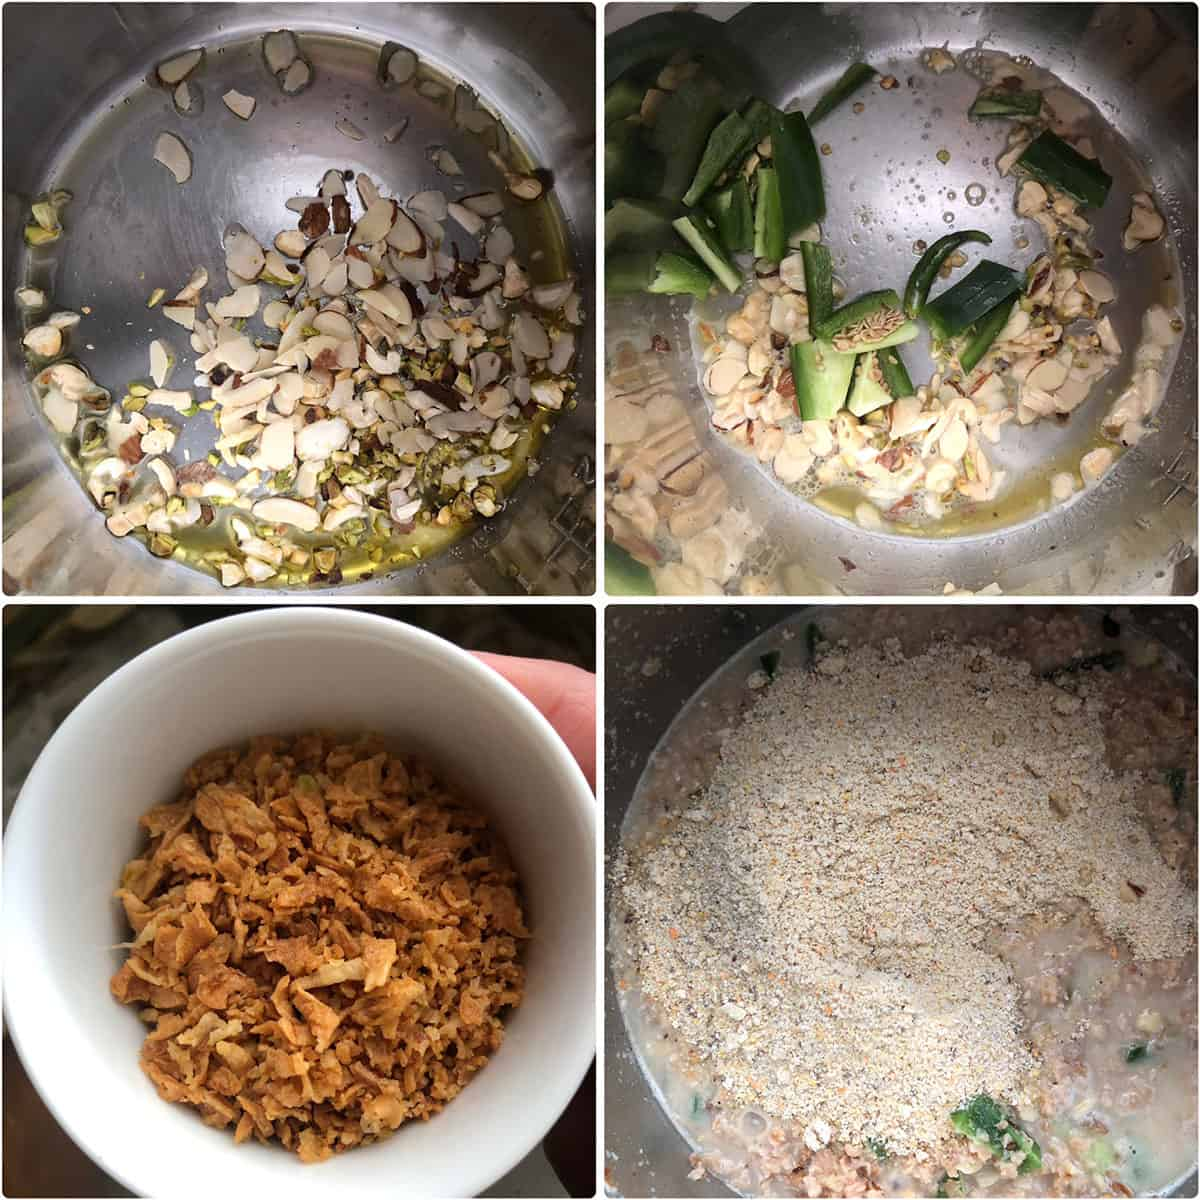 Step by step photos showing the additions of nuts, chilies, fried onions to the Instant Pot